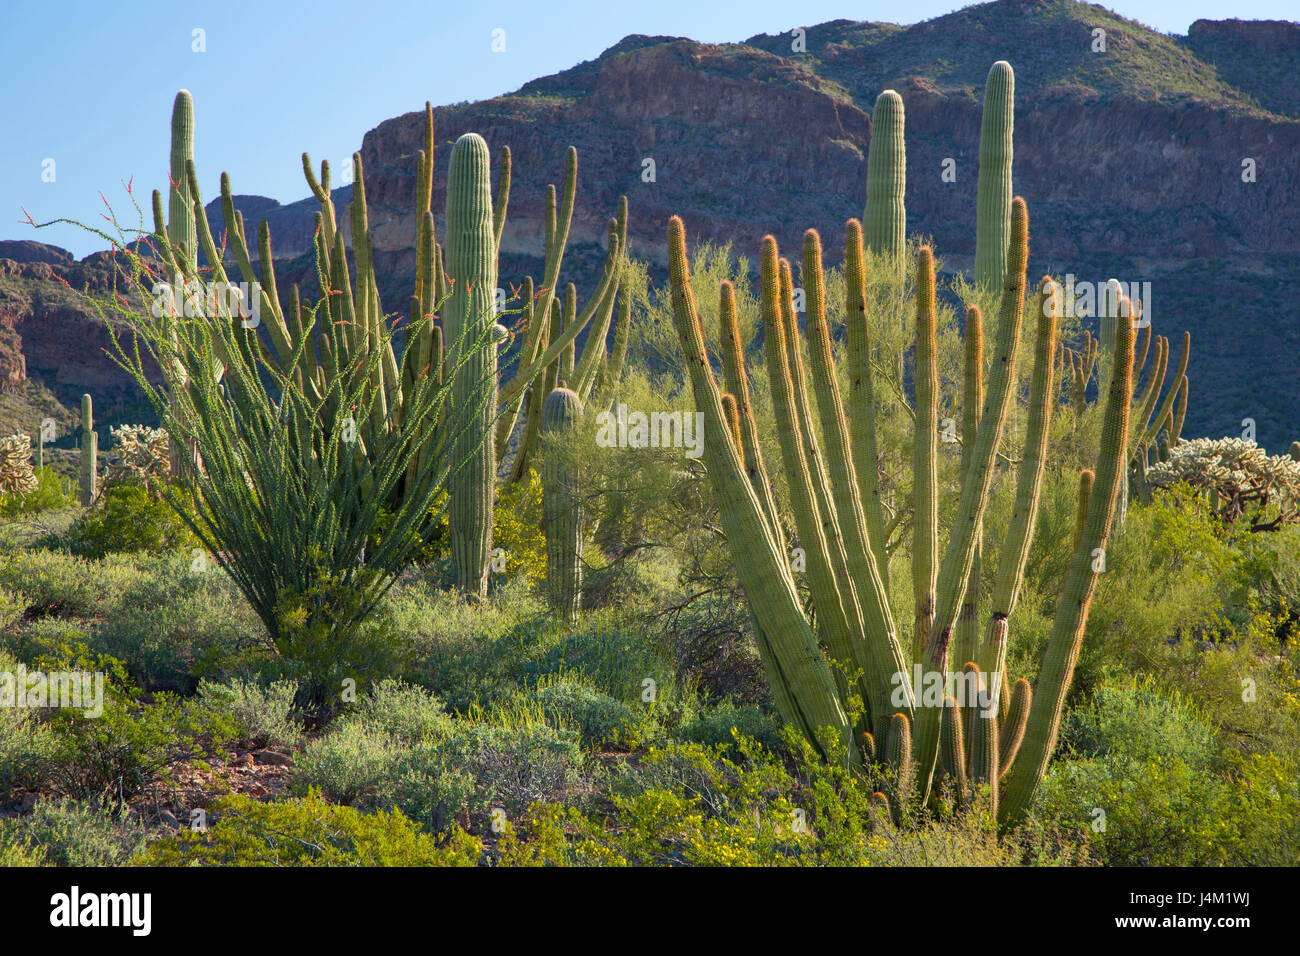 Desert with saguaro and organ pipe cactus along Ajo Mountain Drive, Organ Pipe Cactus National Monument, Arizona - Stock Image